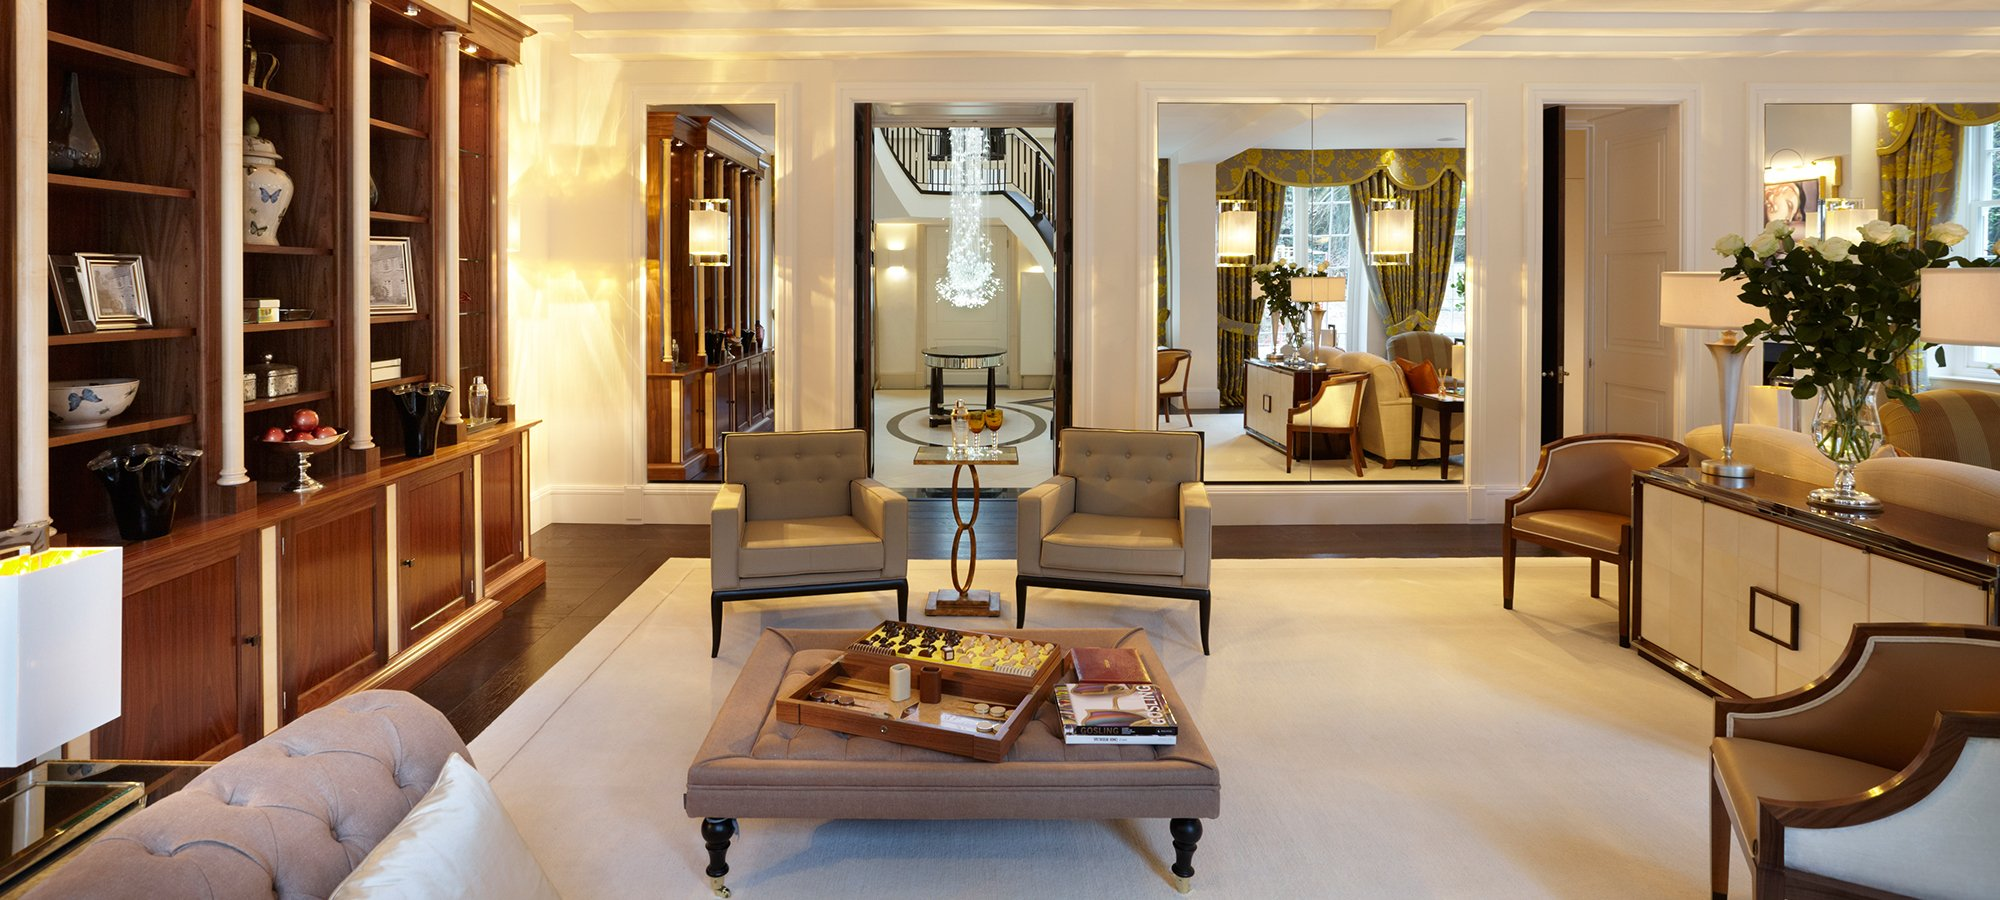 Interior Design Company in Dubai | Luxury Interior Design